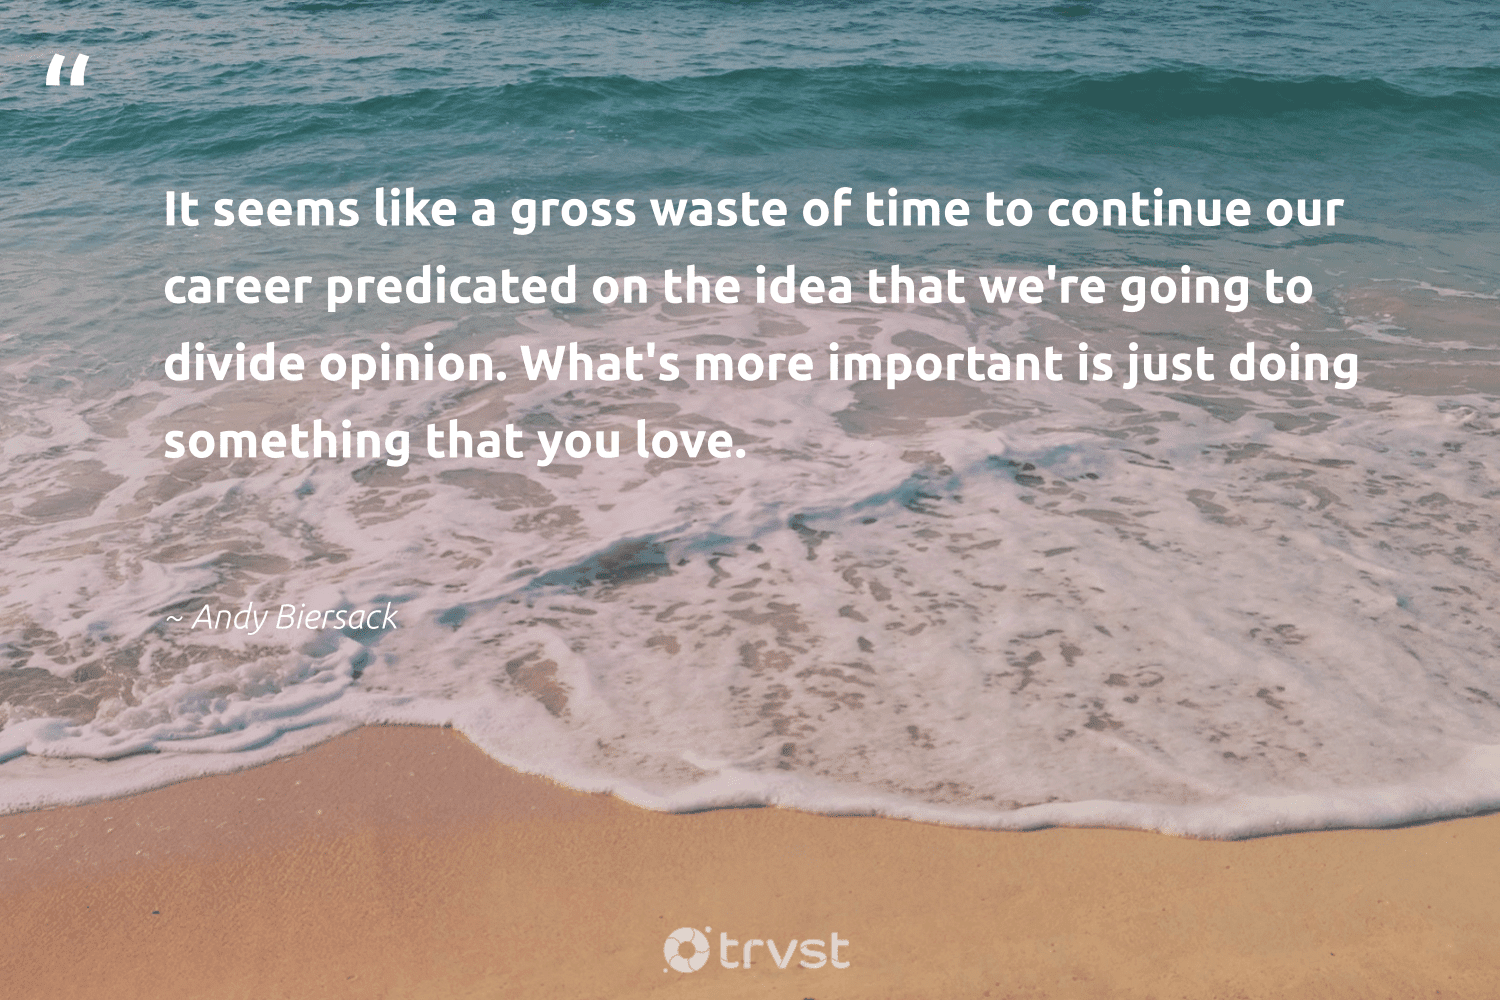 """""""It seems like a gross waste of time to continue our career predicated on the idea that we're going to divide opinion. What's more important is just doing something that you love.""""  - Andy Biersack #trvst #quotes #love #waste #nevergiveup #dogood #futureofwork #planetearthfirst #begreat #beinspired #softskills #dosomething"""